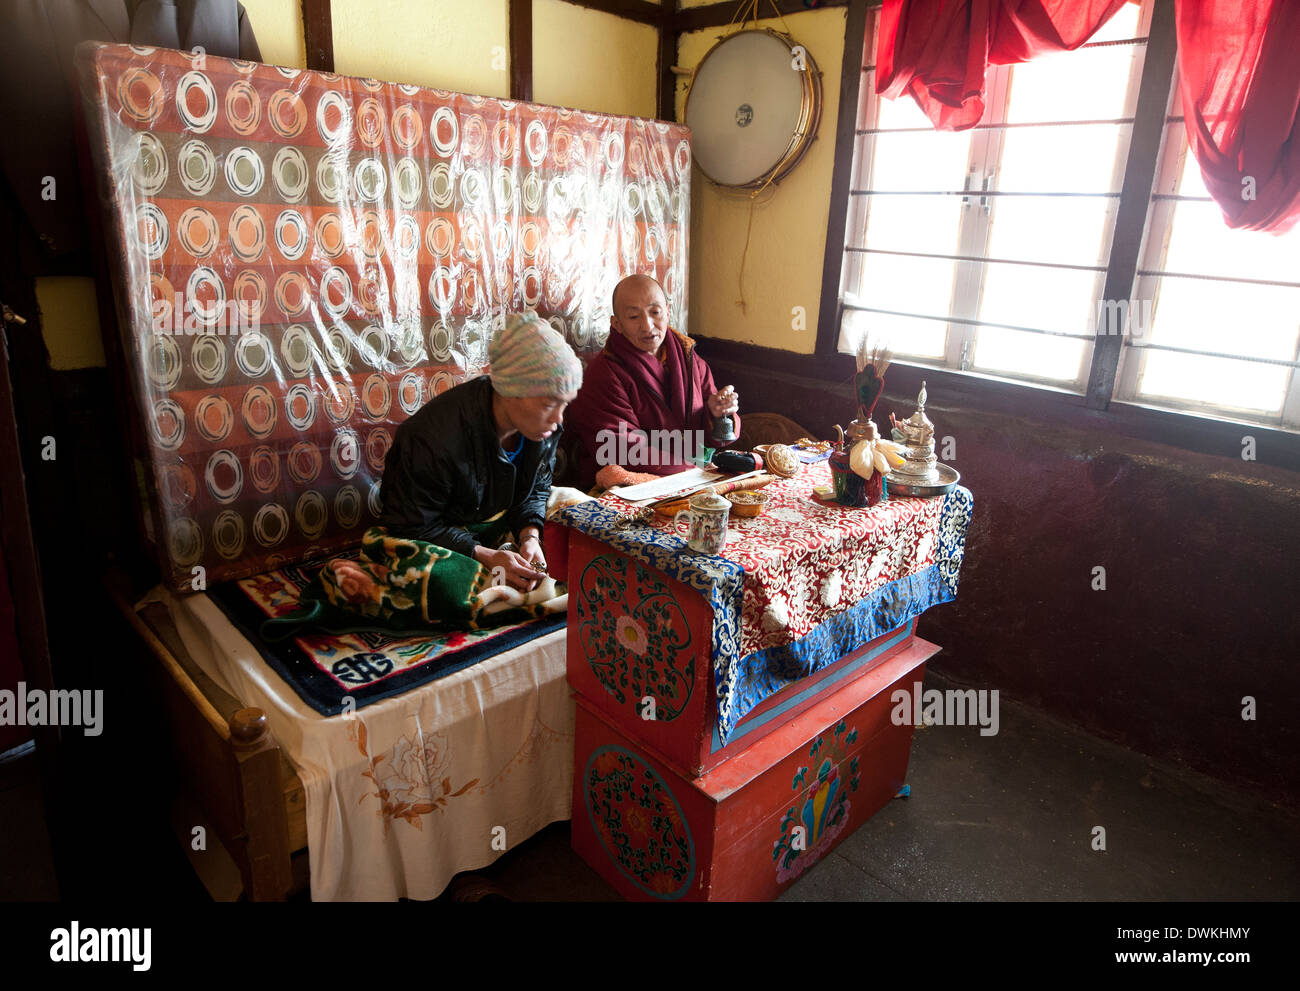 Two Buddhist men chanting a Buddhist mantra inside roadside tea stall at the Sela Pass, Arunachal Pradesh, India - Stock Image